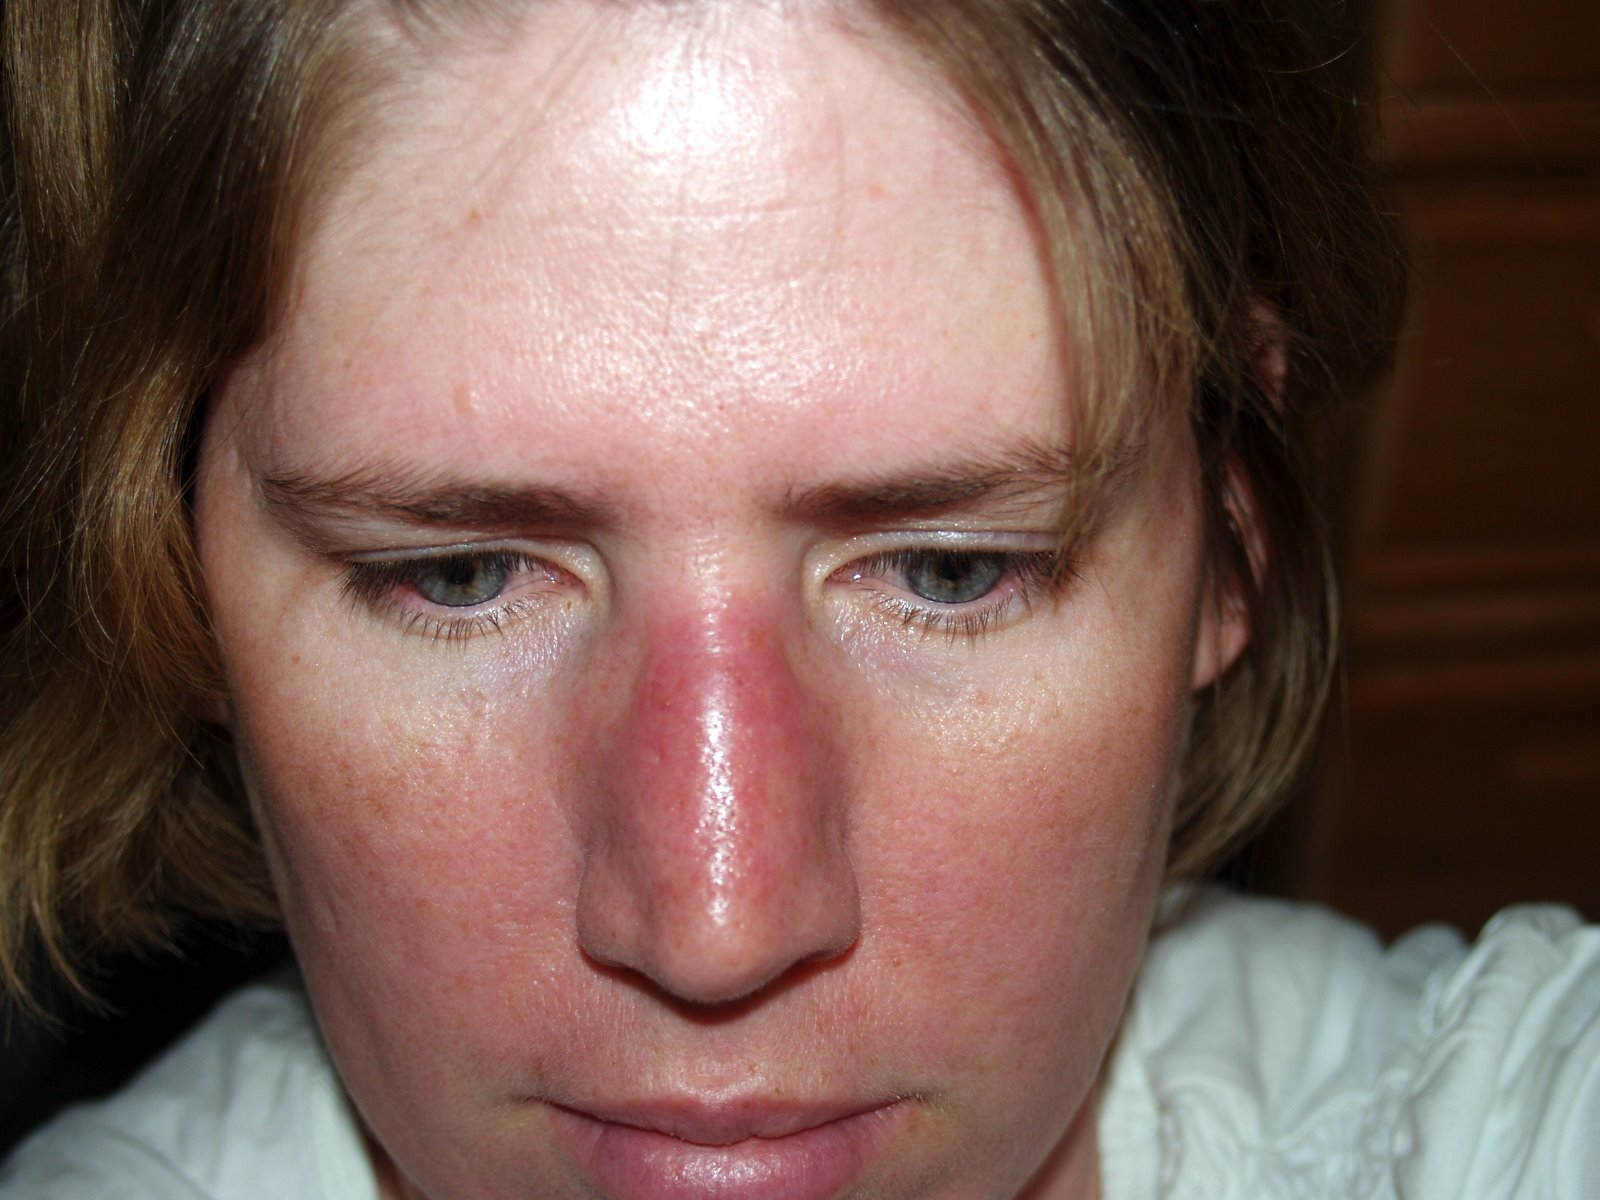 Agree, Treatment of facial cellulitis commit